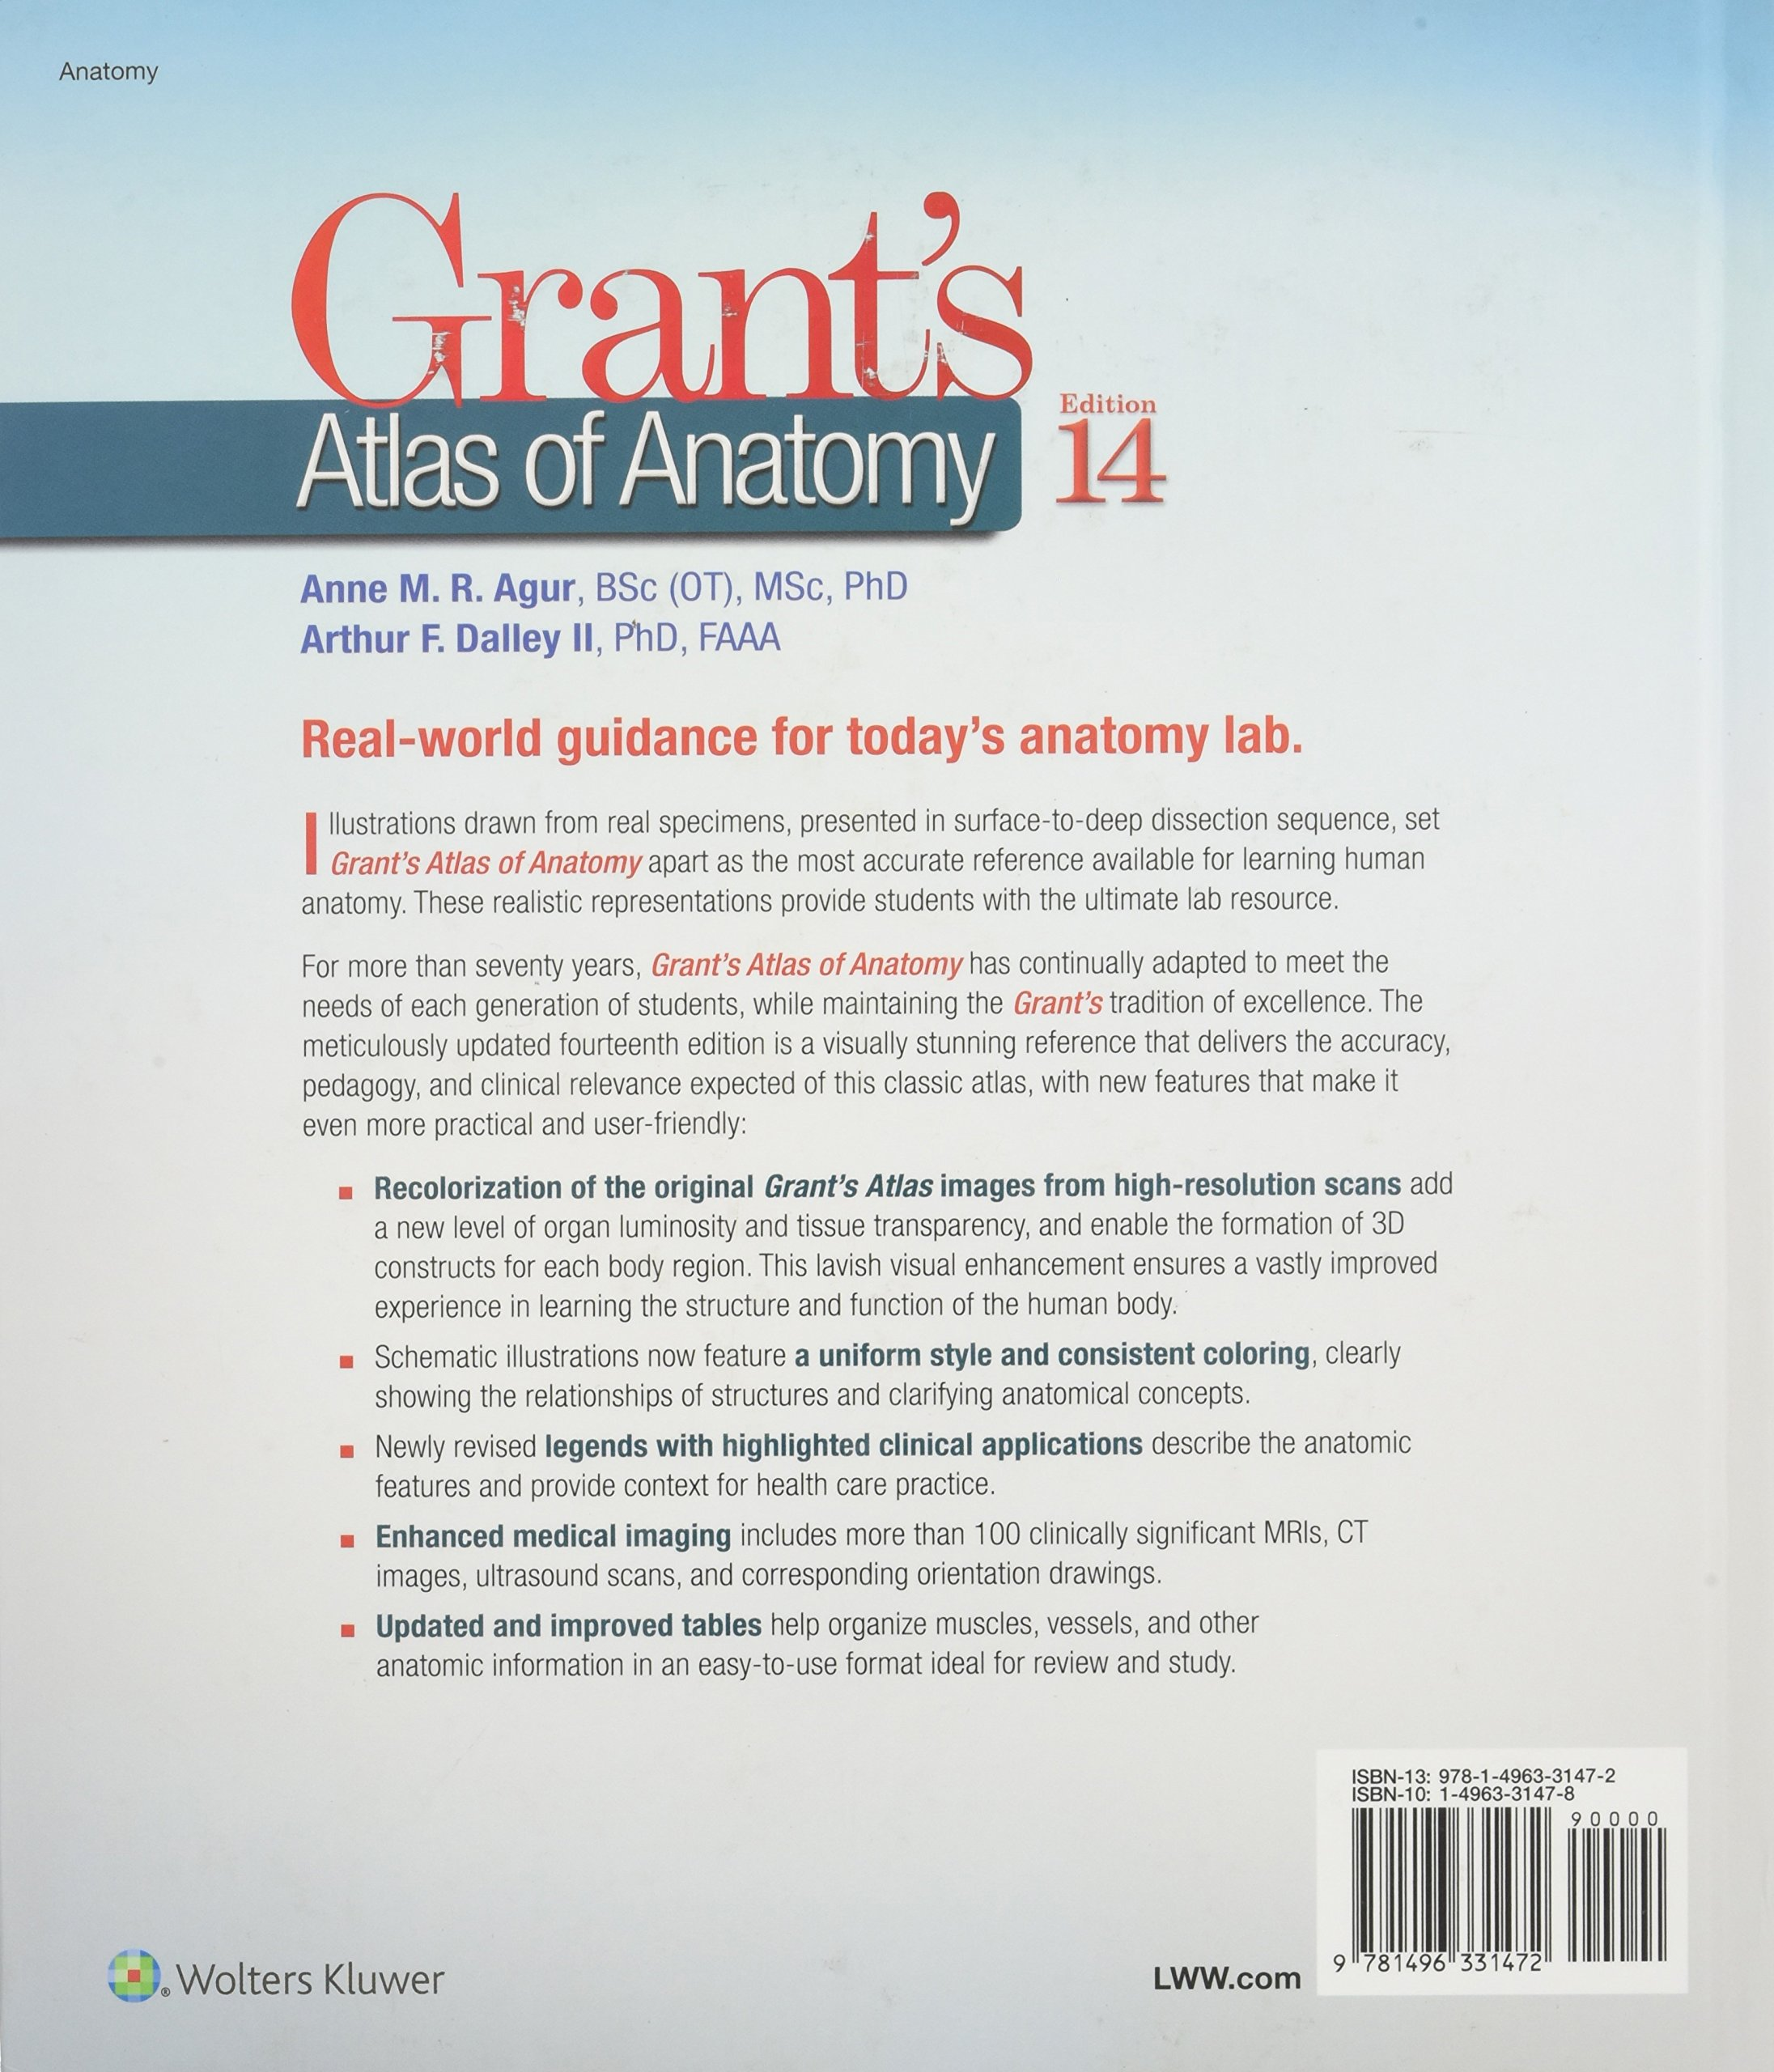 Grant\'s Atlas of Anatomy: Amazon.de: Anne M. R. Agur, Arthur F ...